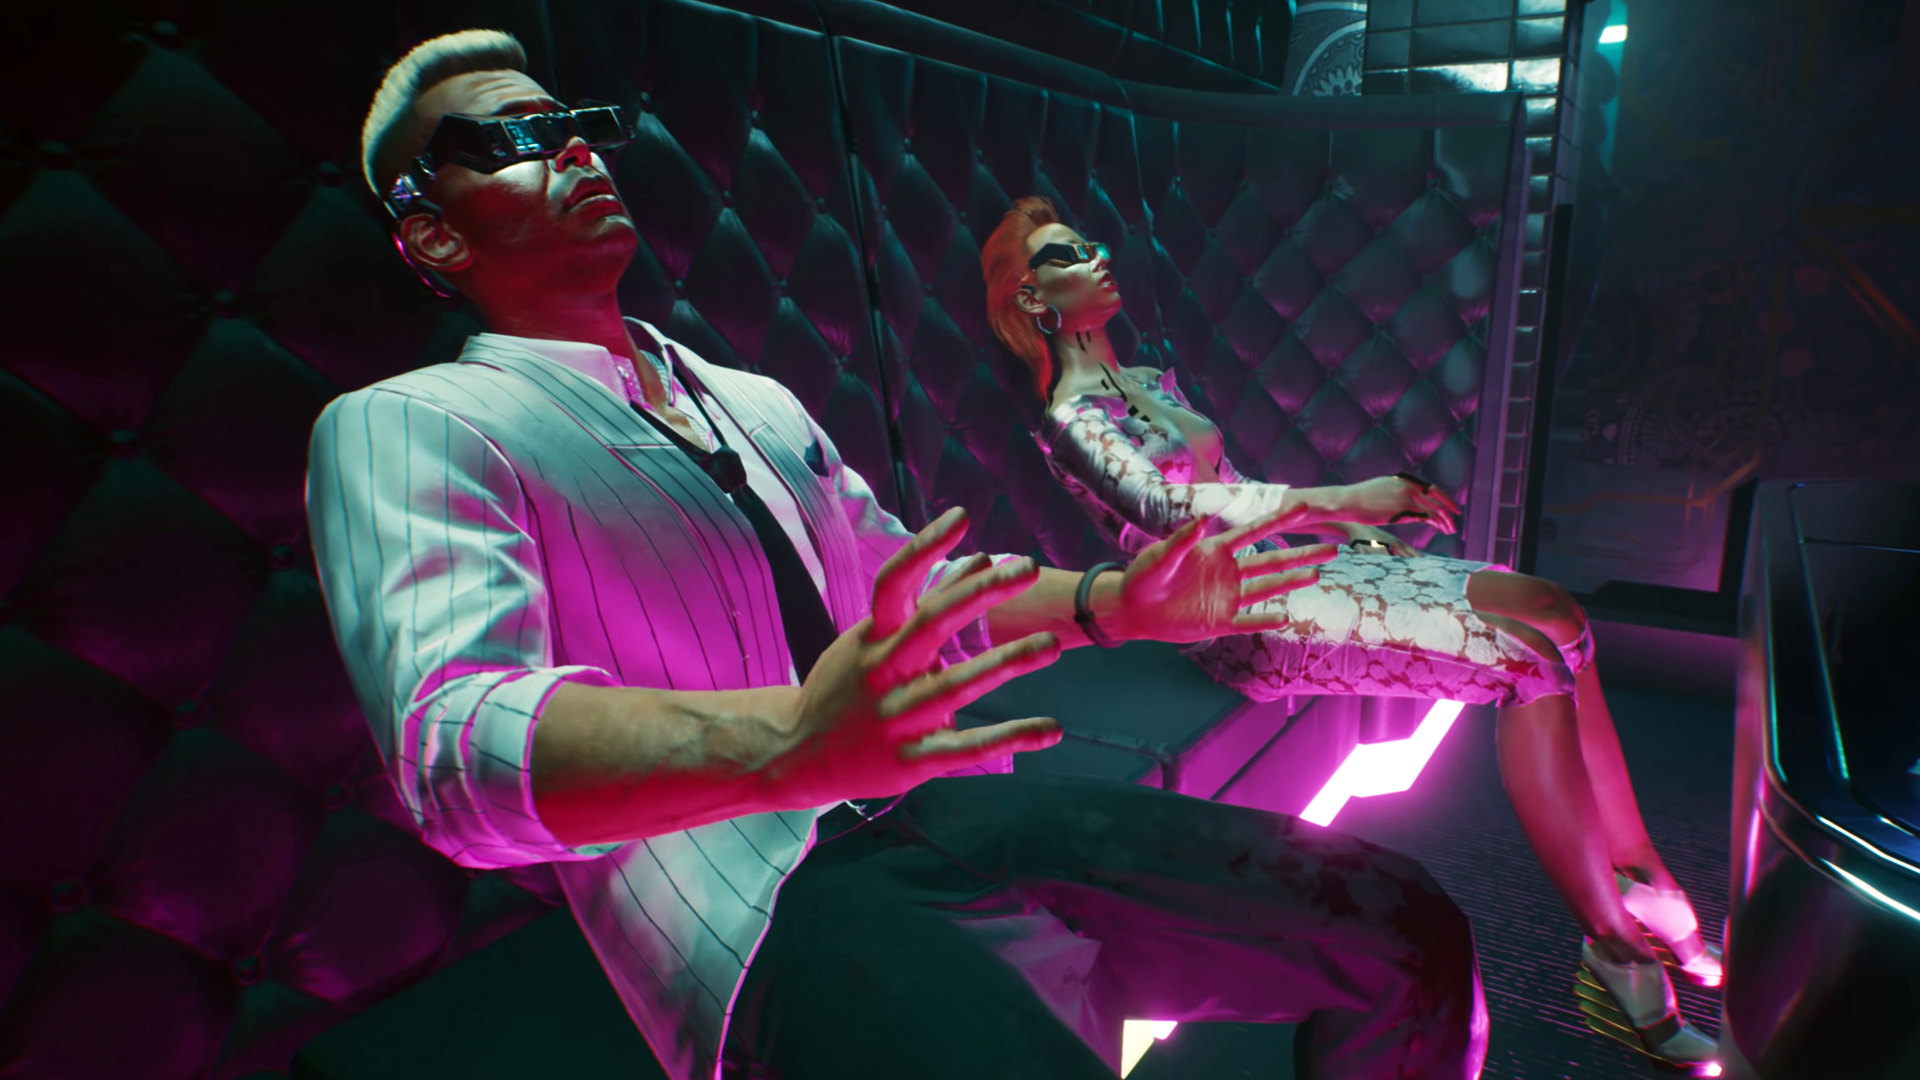 Cyberpunk 2077 guide. How to get out of braindance?